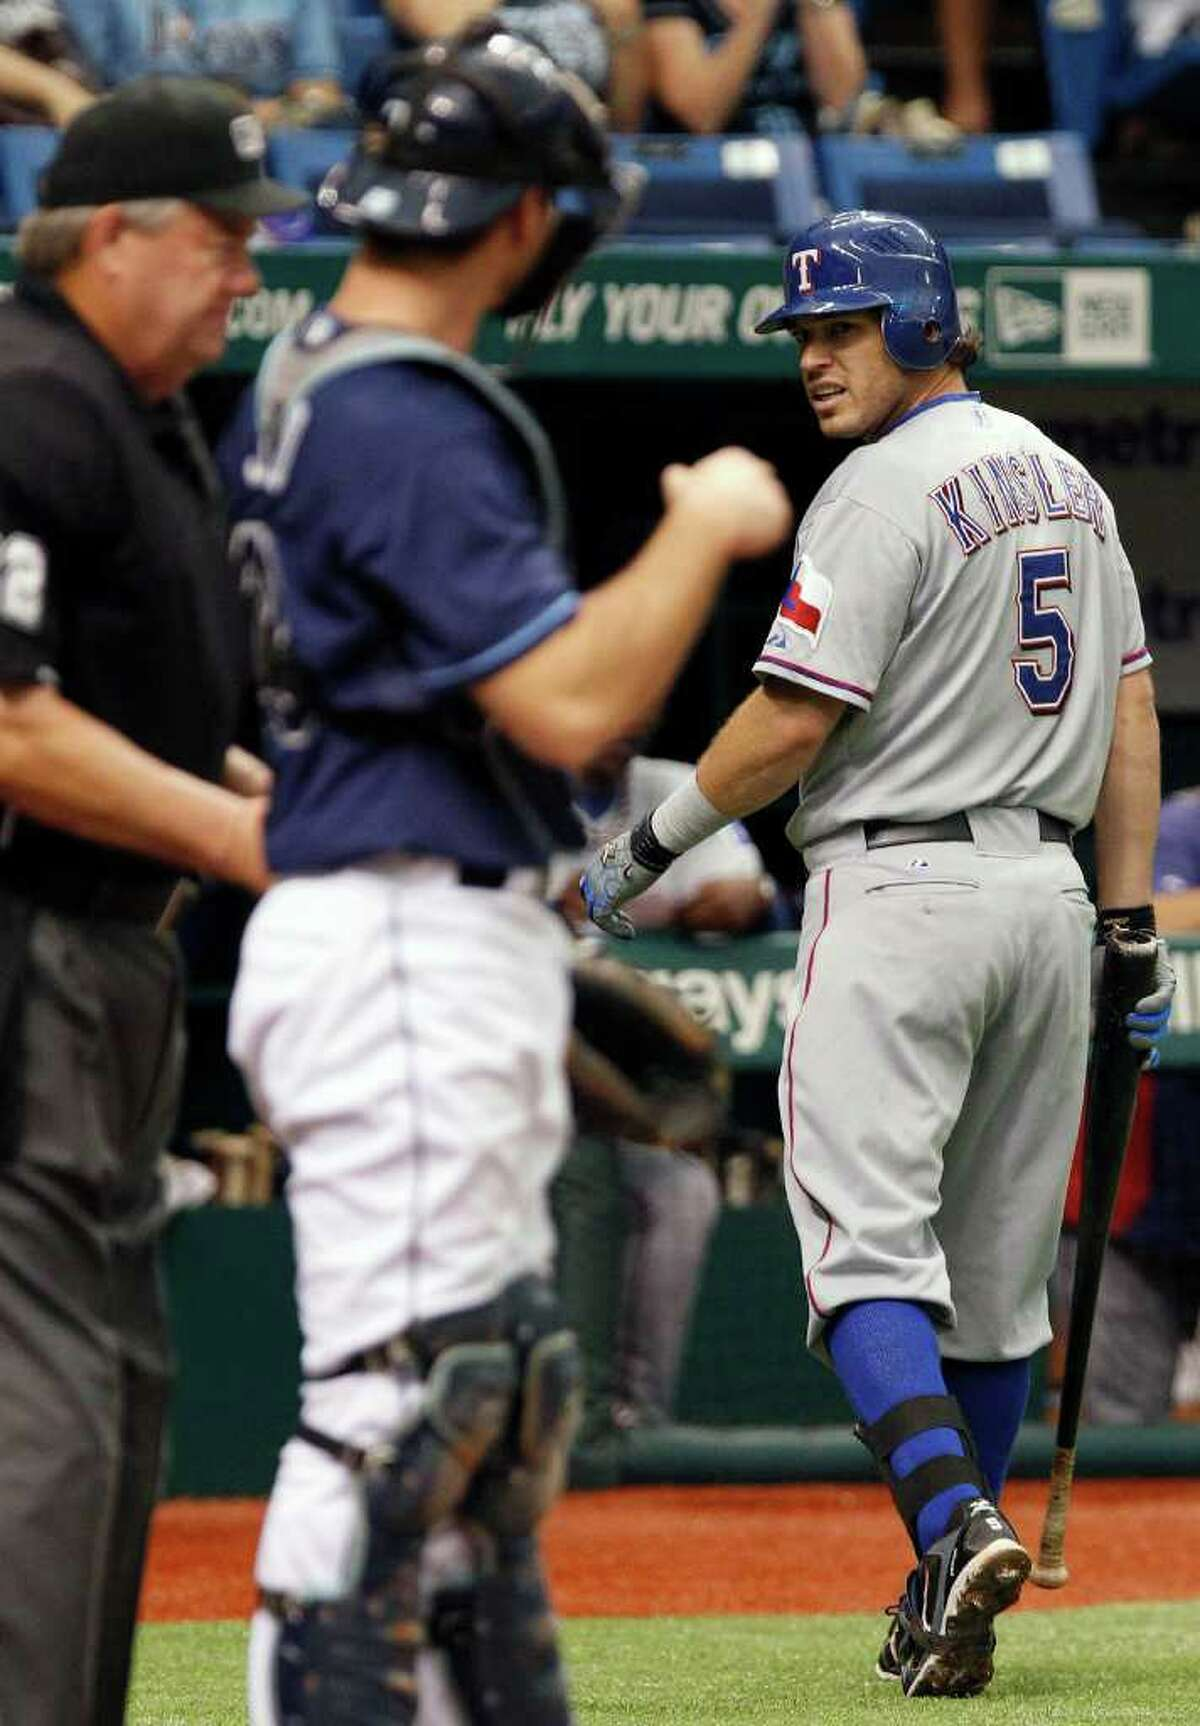 Texas Rangers' Ian Kinsler (5) has words with home plate umpire Joe West, left, after being called out on strikes on pitch from Tampa Bay Rays' James Shields during the third inning of a baseball game Monday, Sept. 5, 2011, in St. Petersburg, Fla. Looking on is Rays' catcher John Jaso.